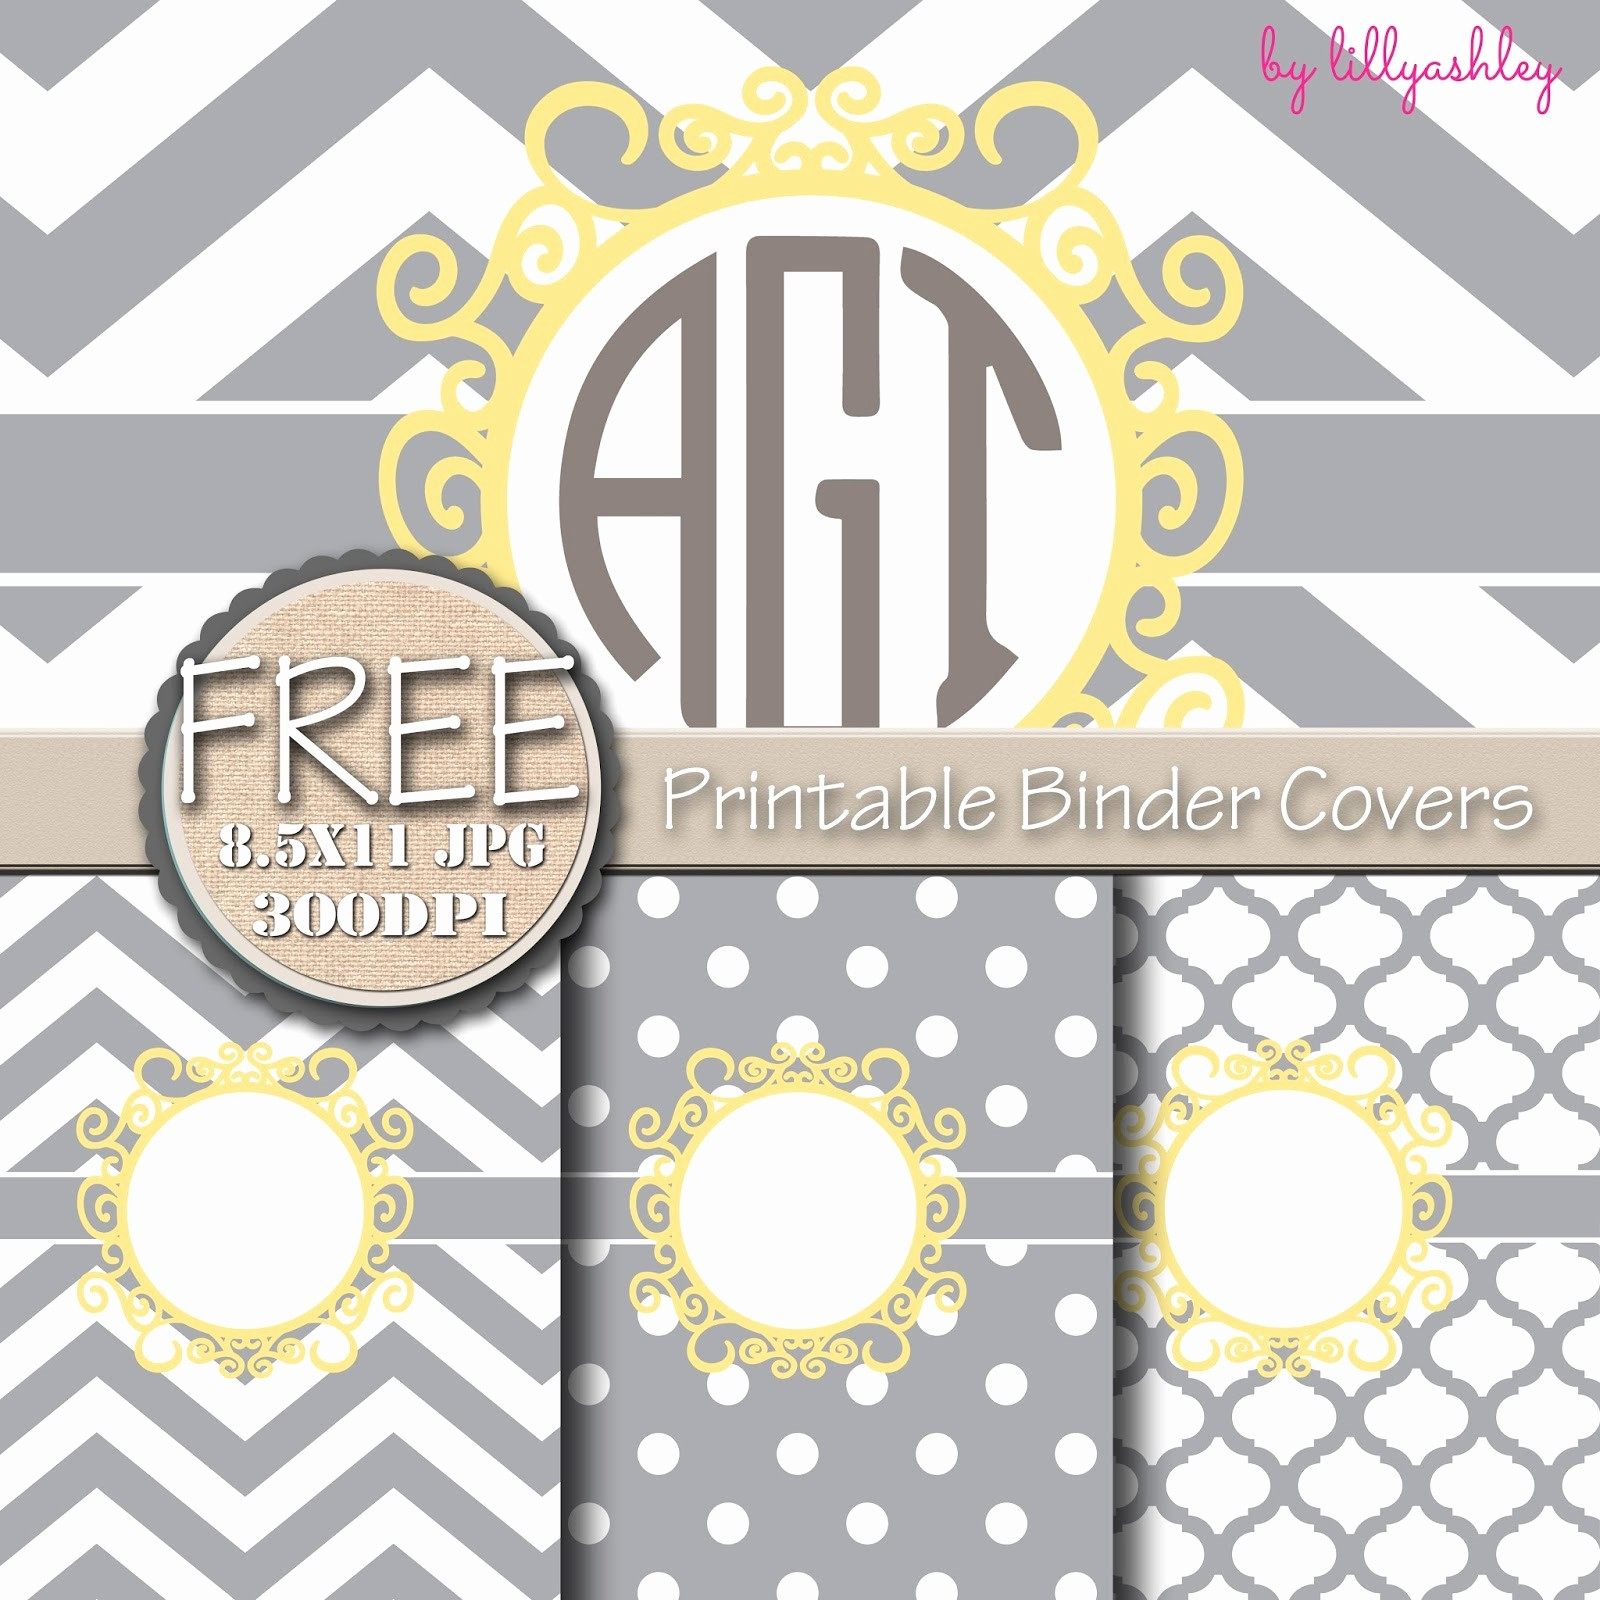 Free Binder Covers and Spines Inspirational Make It Create by Lillyashley Freebie Downloads Freebie